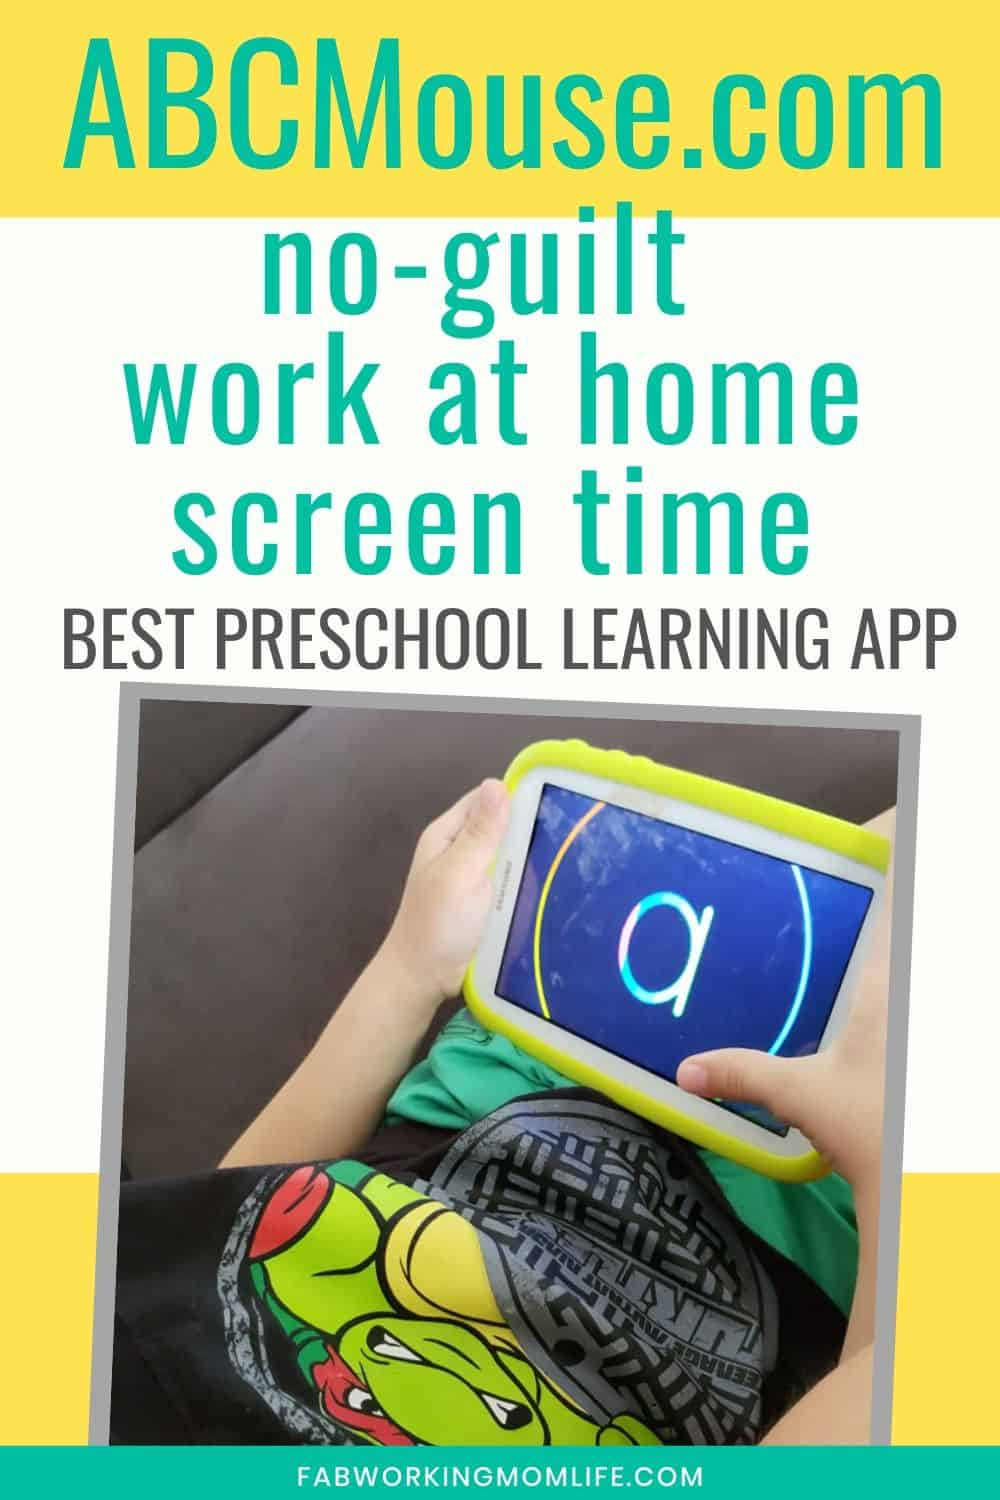 Abcmouse Review: No-Guilt Screen Time - Fab Working Mom Life